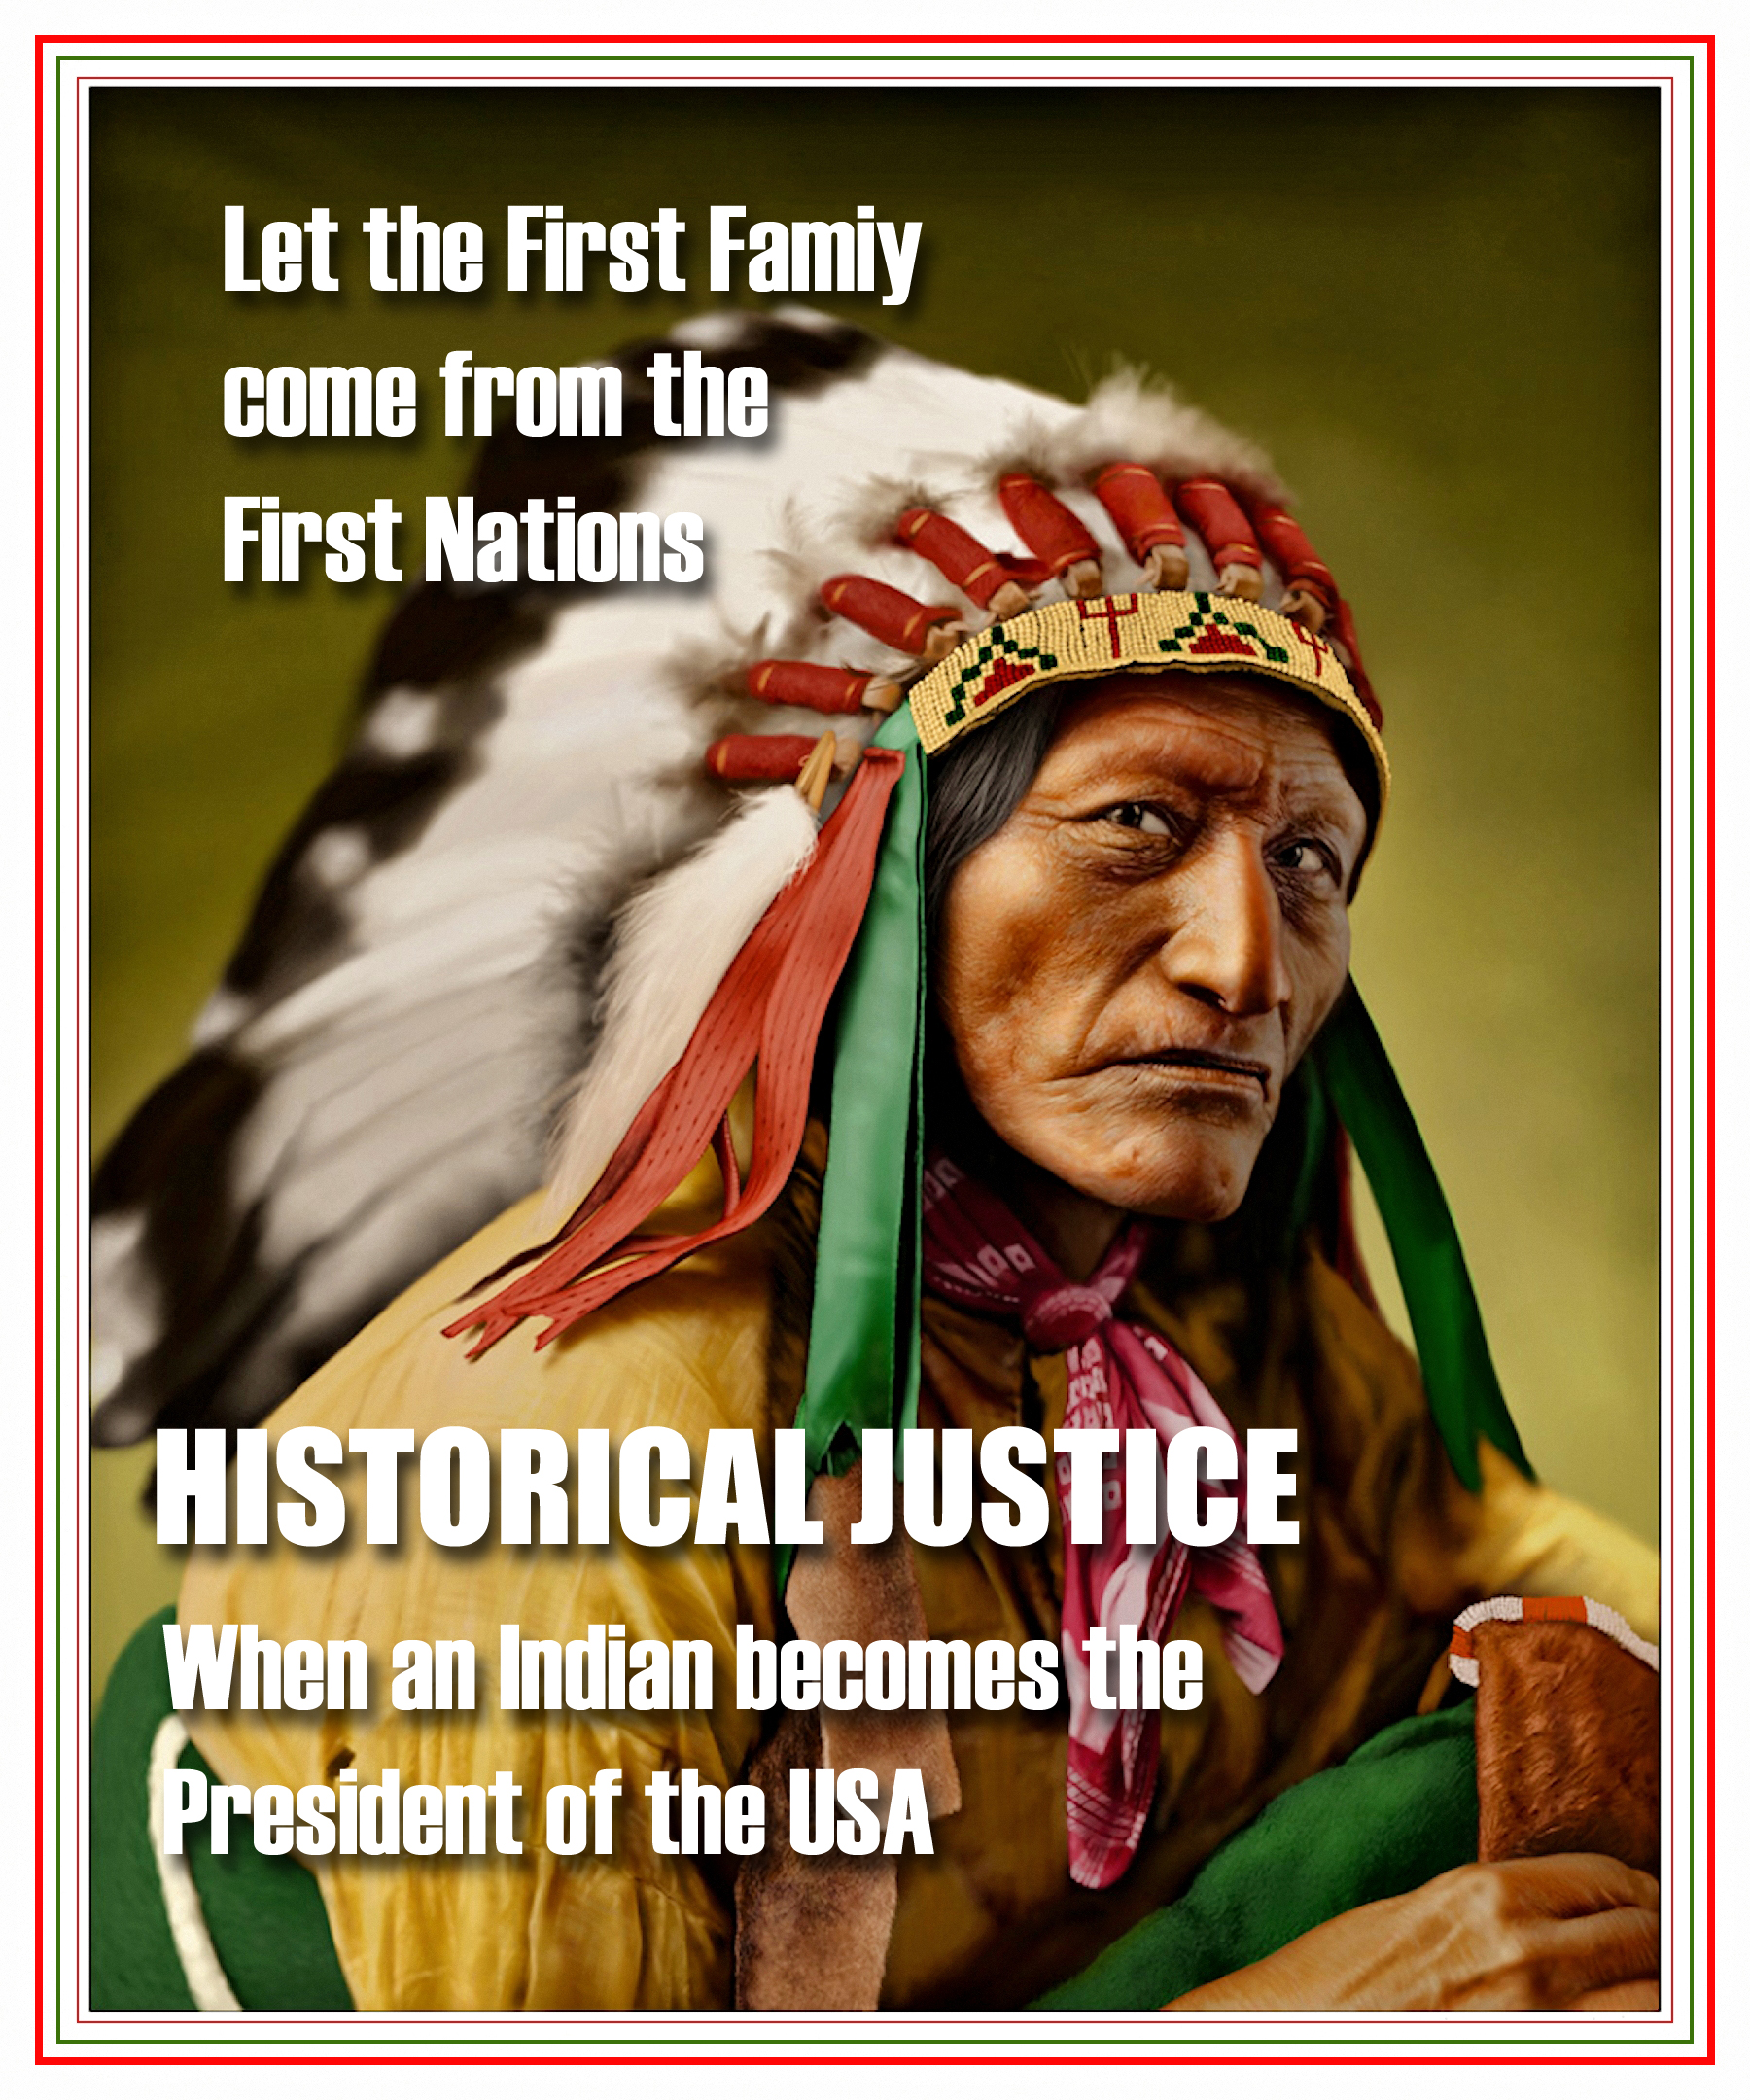 00 historical justice. native american. 24.05.15